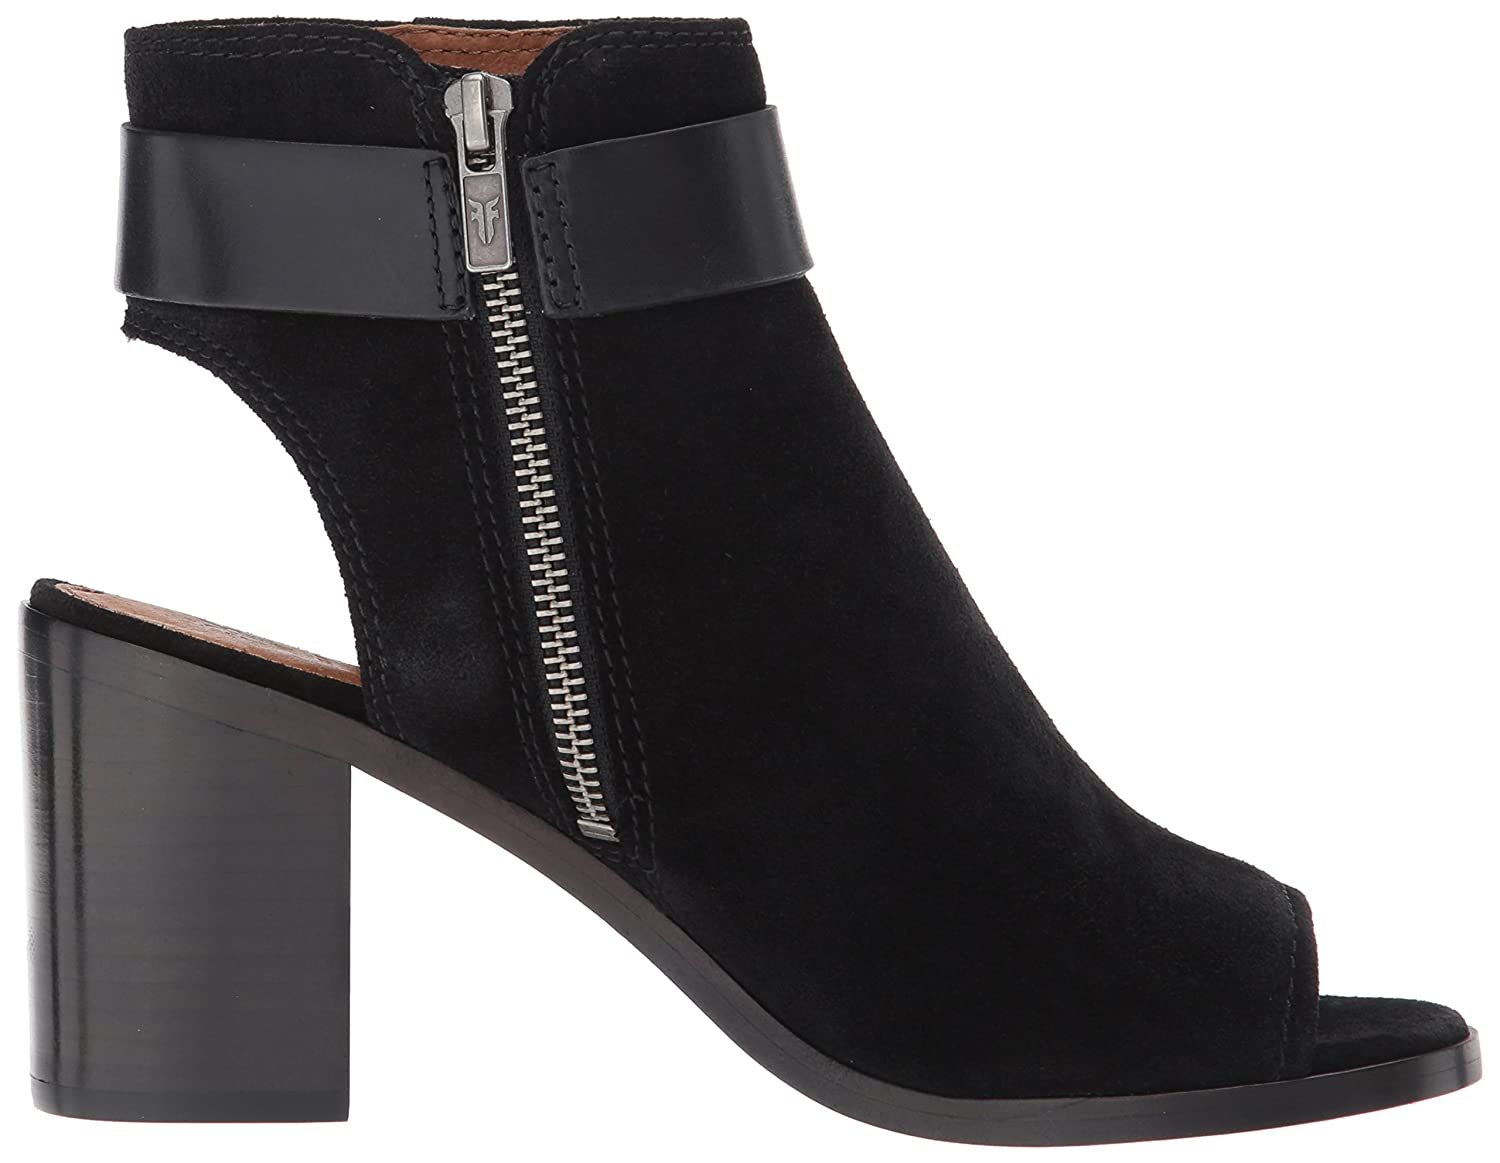 FRYE Women's Danica Harness Boot B01N0P4T8J 5.5 B(M) US|Black Soft Oiled Suede